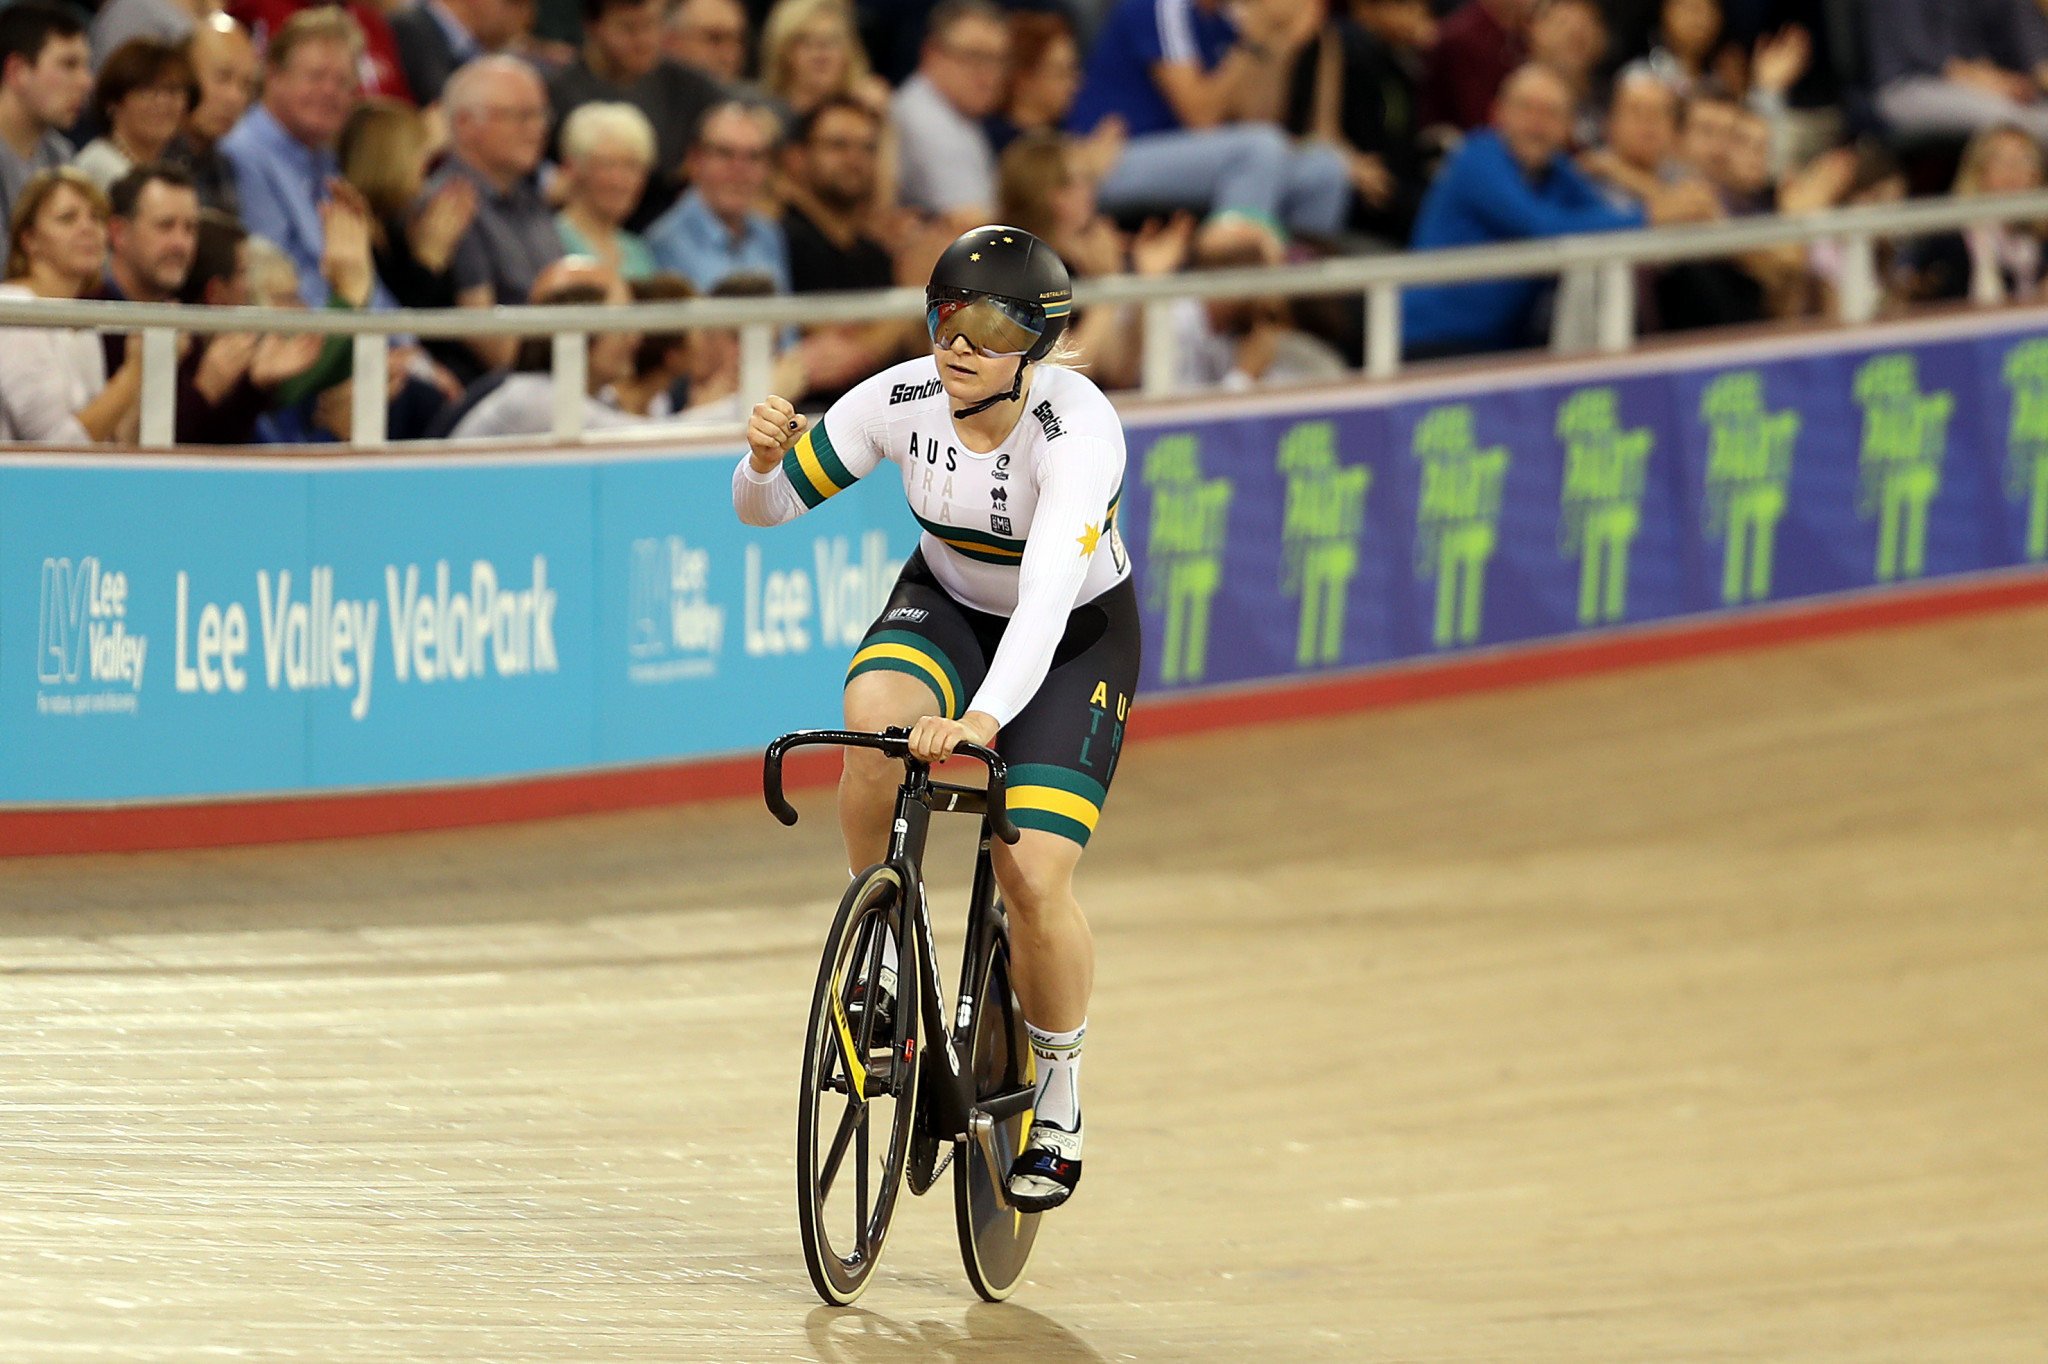 Stephanie Morton won the women's individual sprint event ©Getty Images